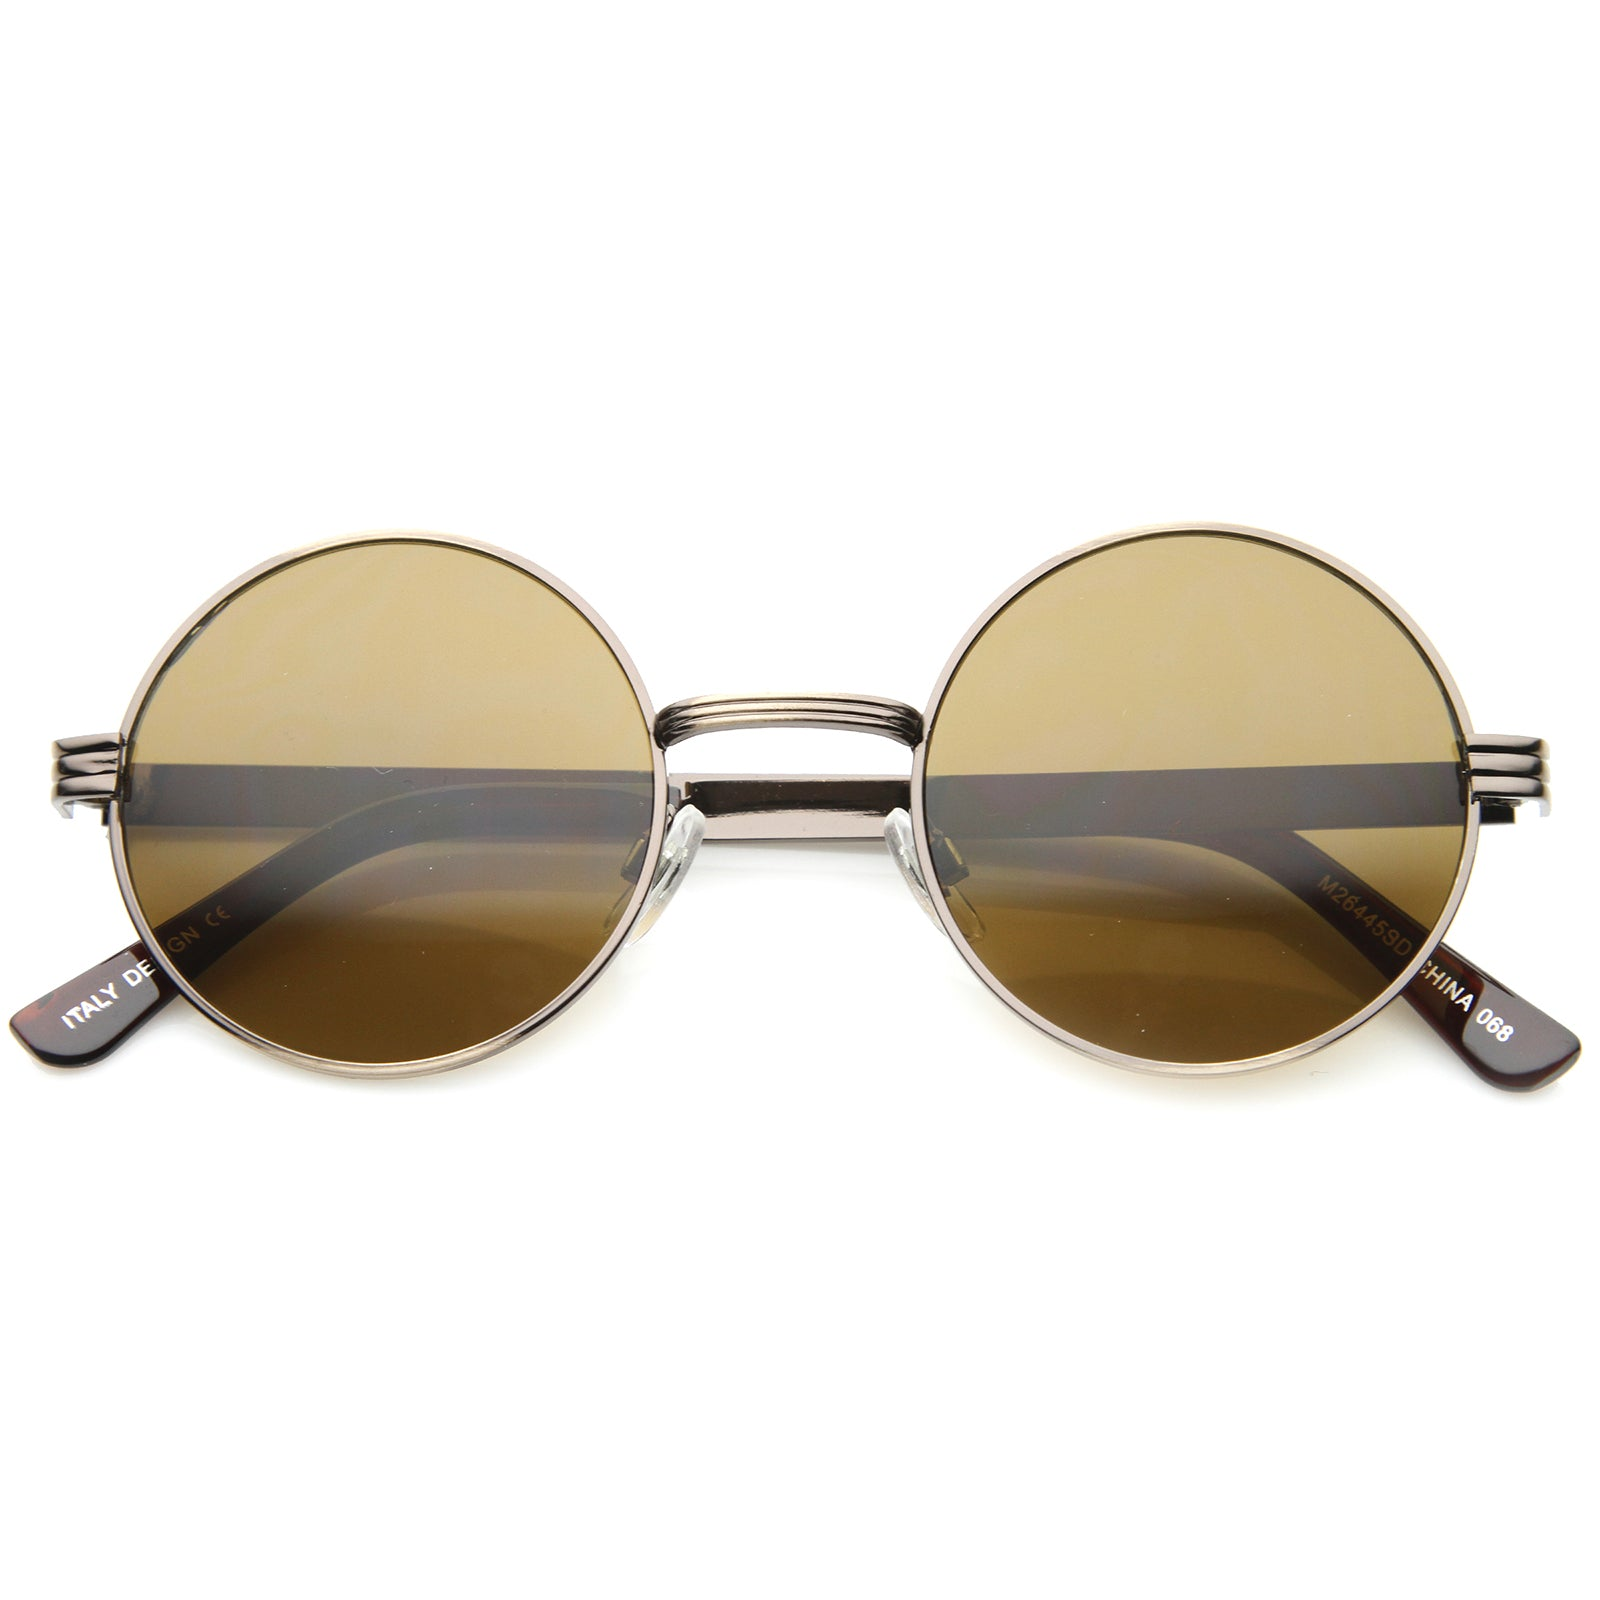 Retro Fashion Metal Textured Frame Flat Lens Round Sunglasses 50mm - sunglass.la - 13